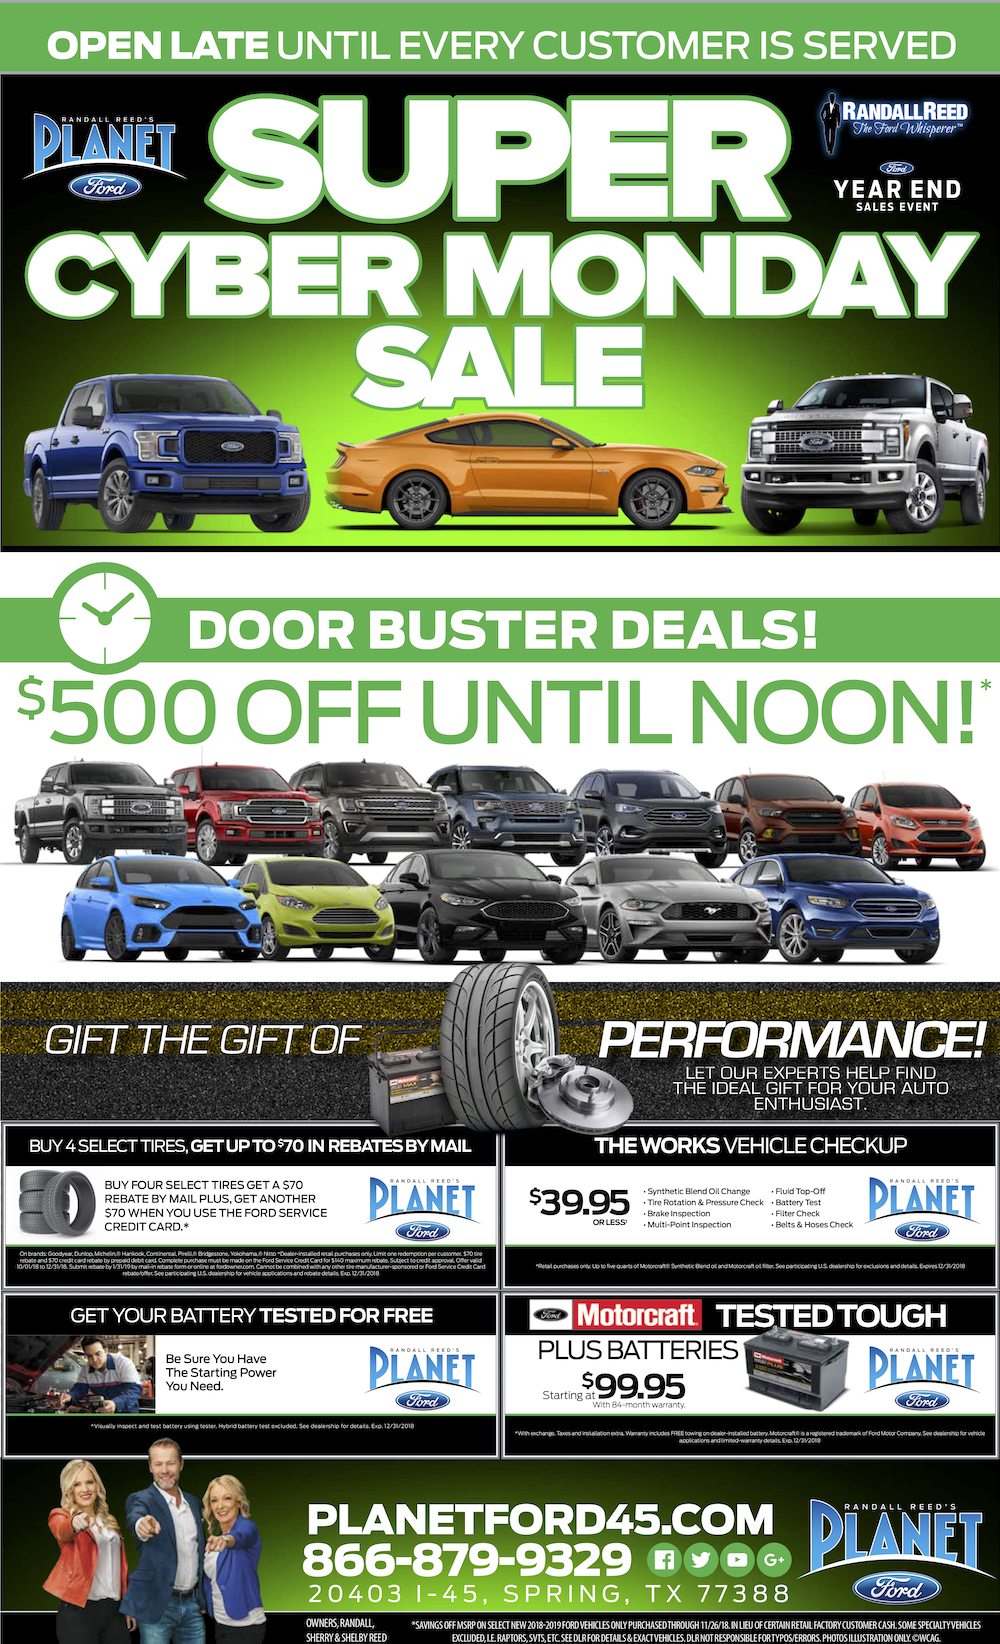 Planet Ford Humble Tx >> Super Charged Cyber Monday Deals At Planet Ford Humbleplanet